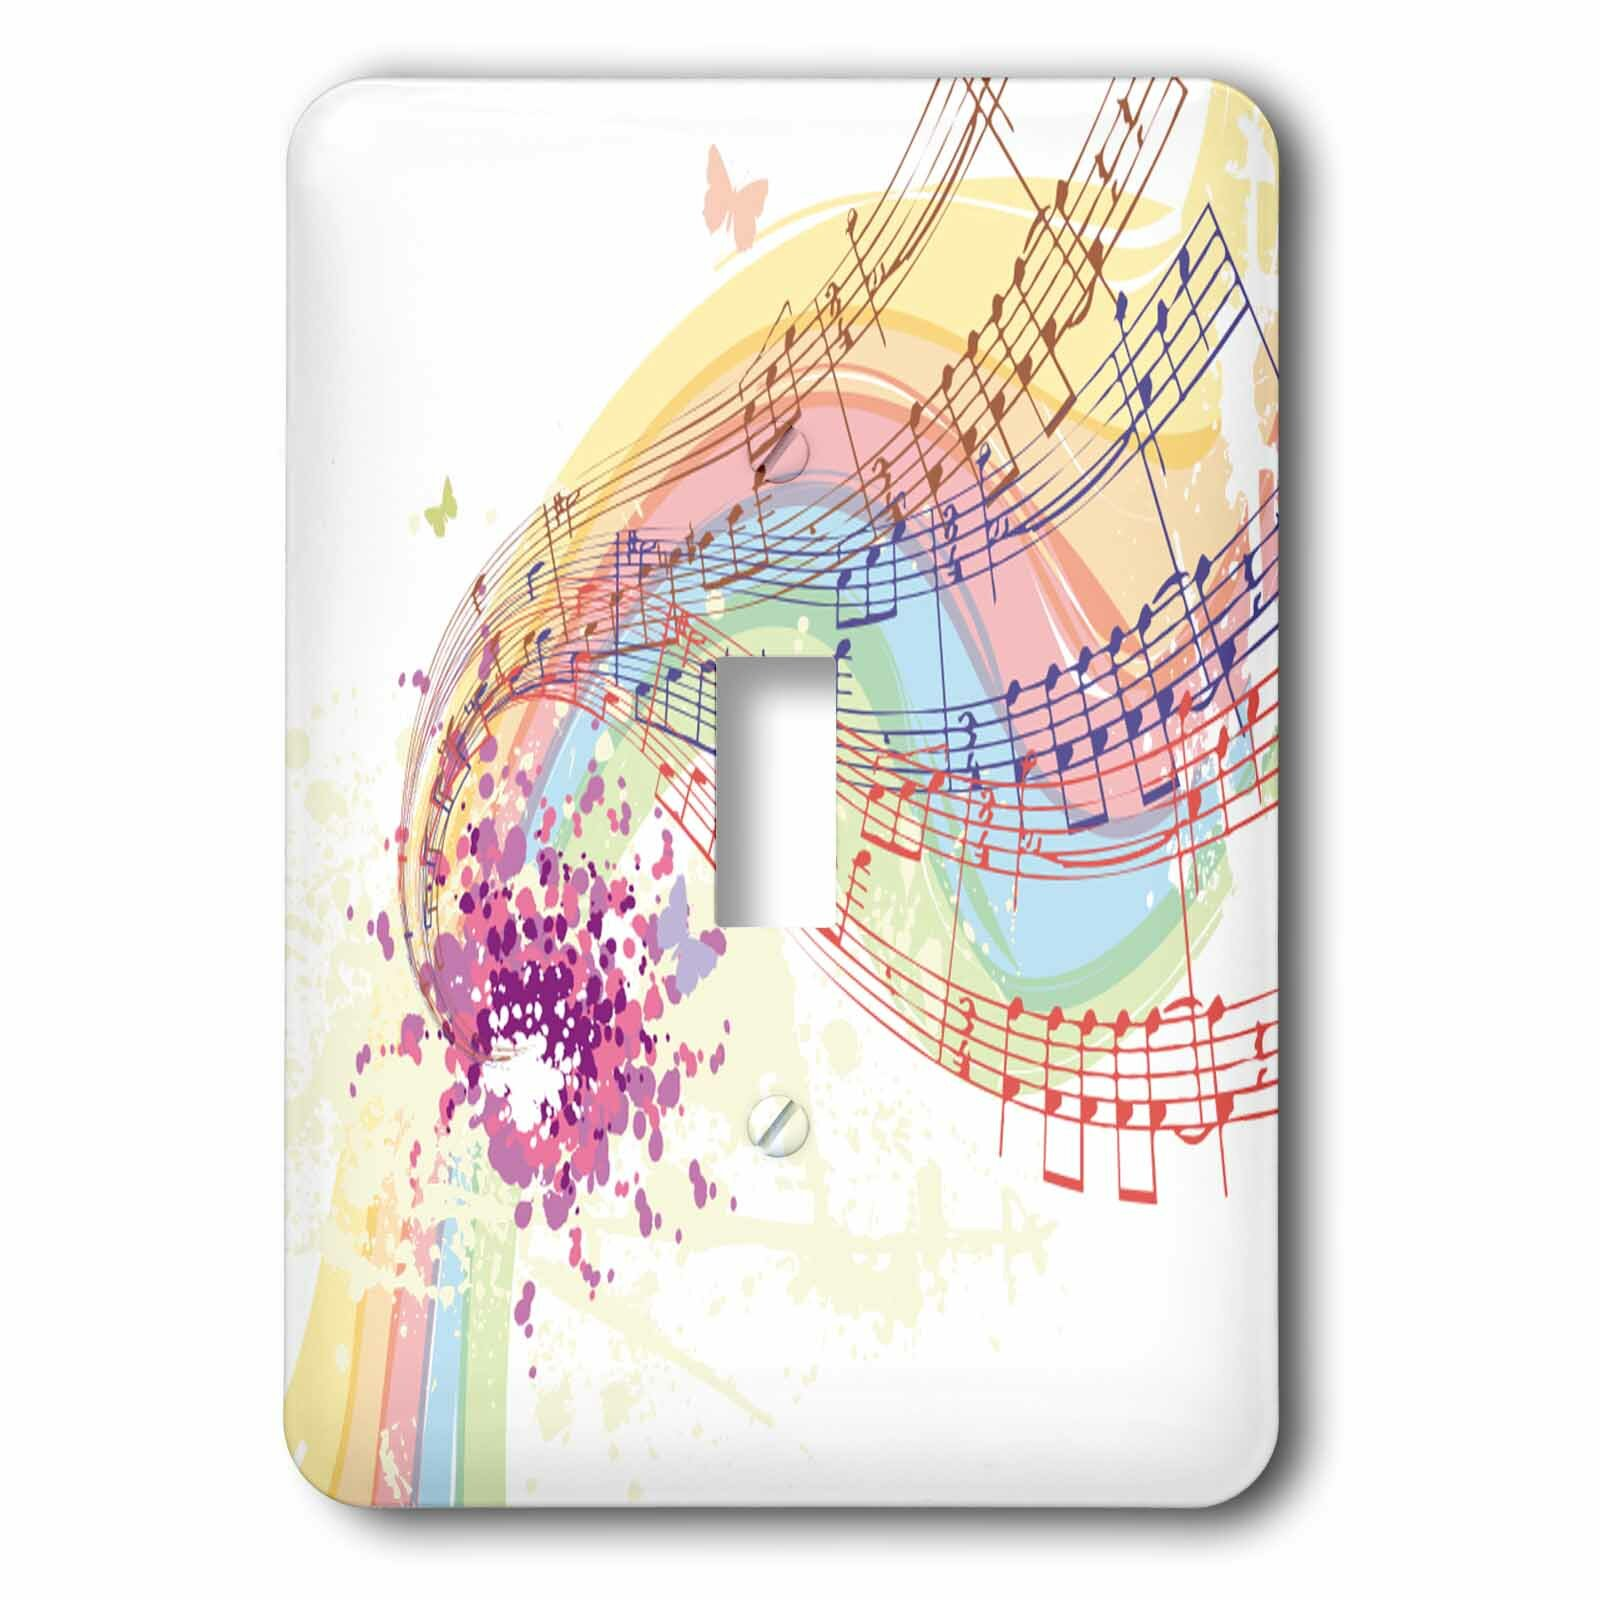 3drose Musical Notes Flourish 1 Gang Toggle Light Switch Wall Plate Wayfair